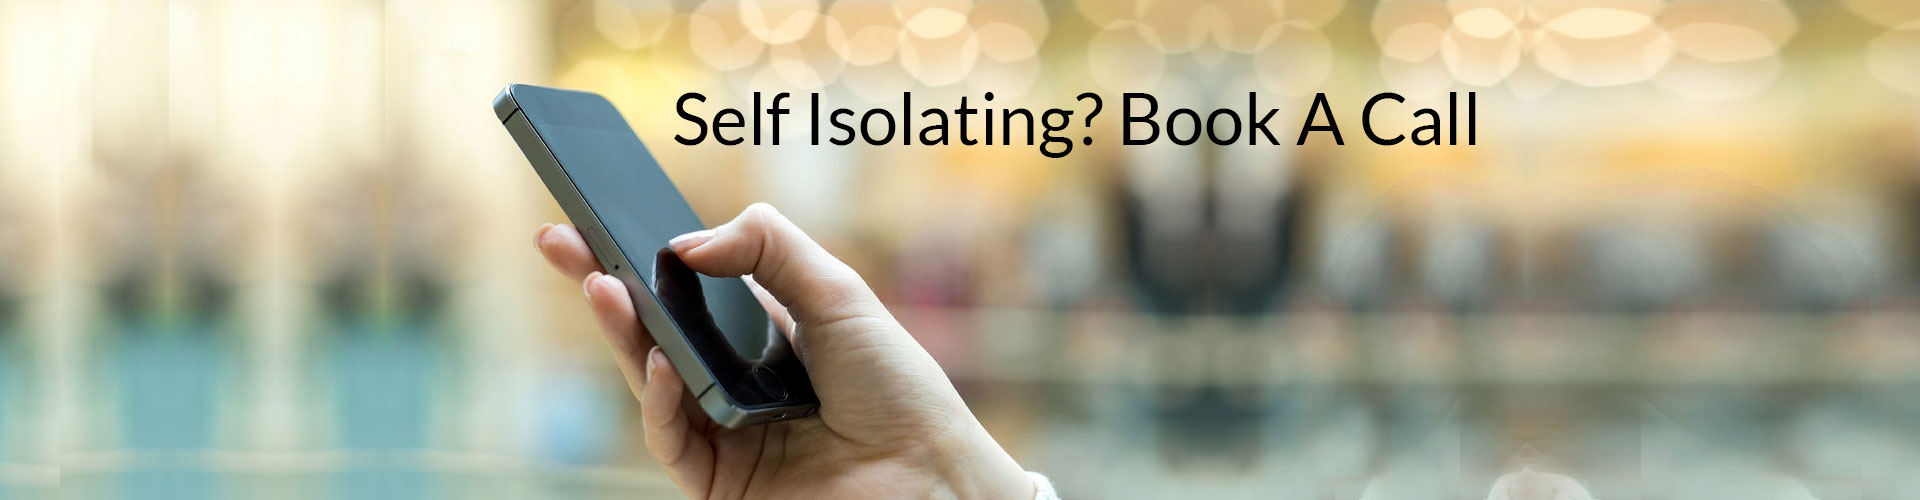 Self Isolating Book A Call banner hbe